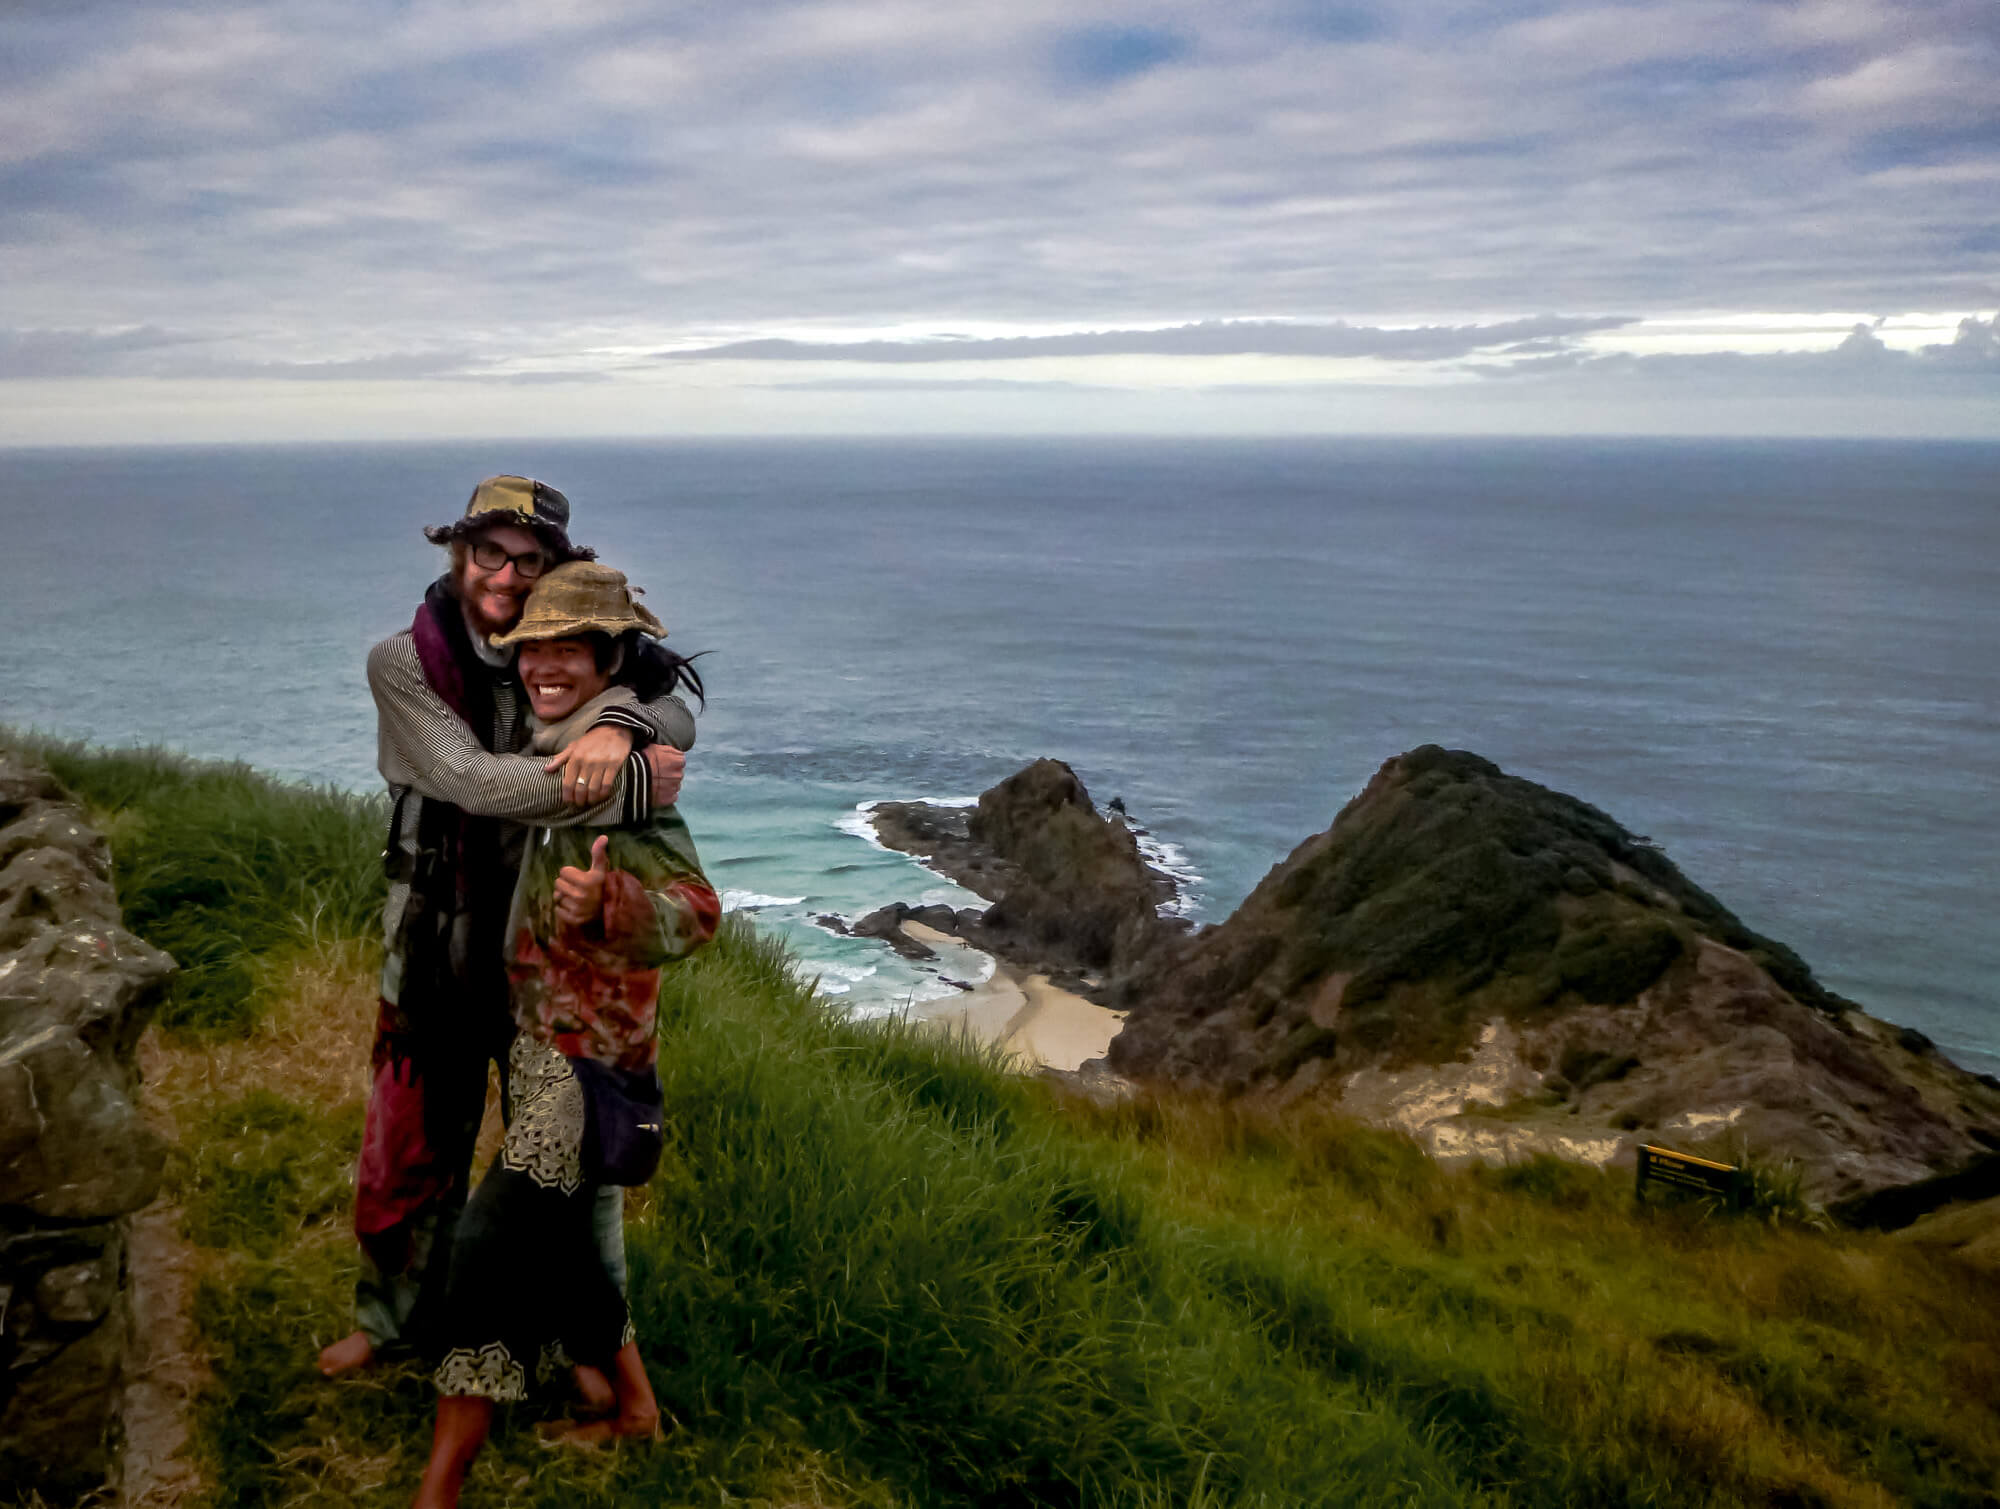 Cape Reinga, New Zealand - me and my first travel companion